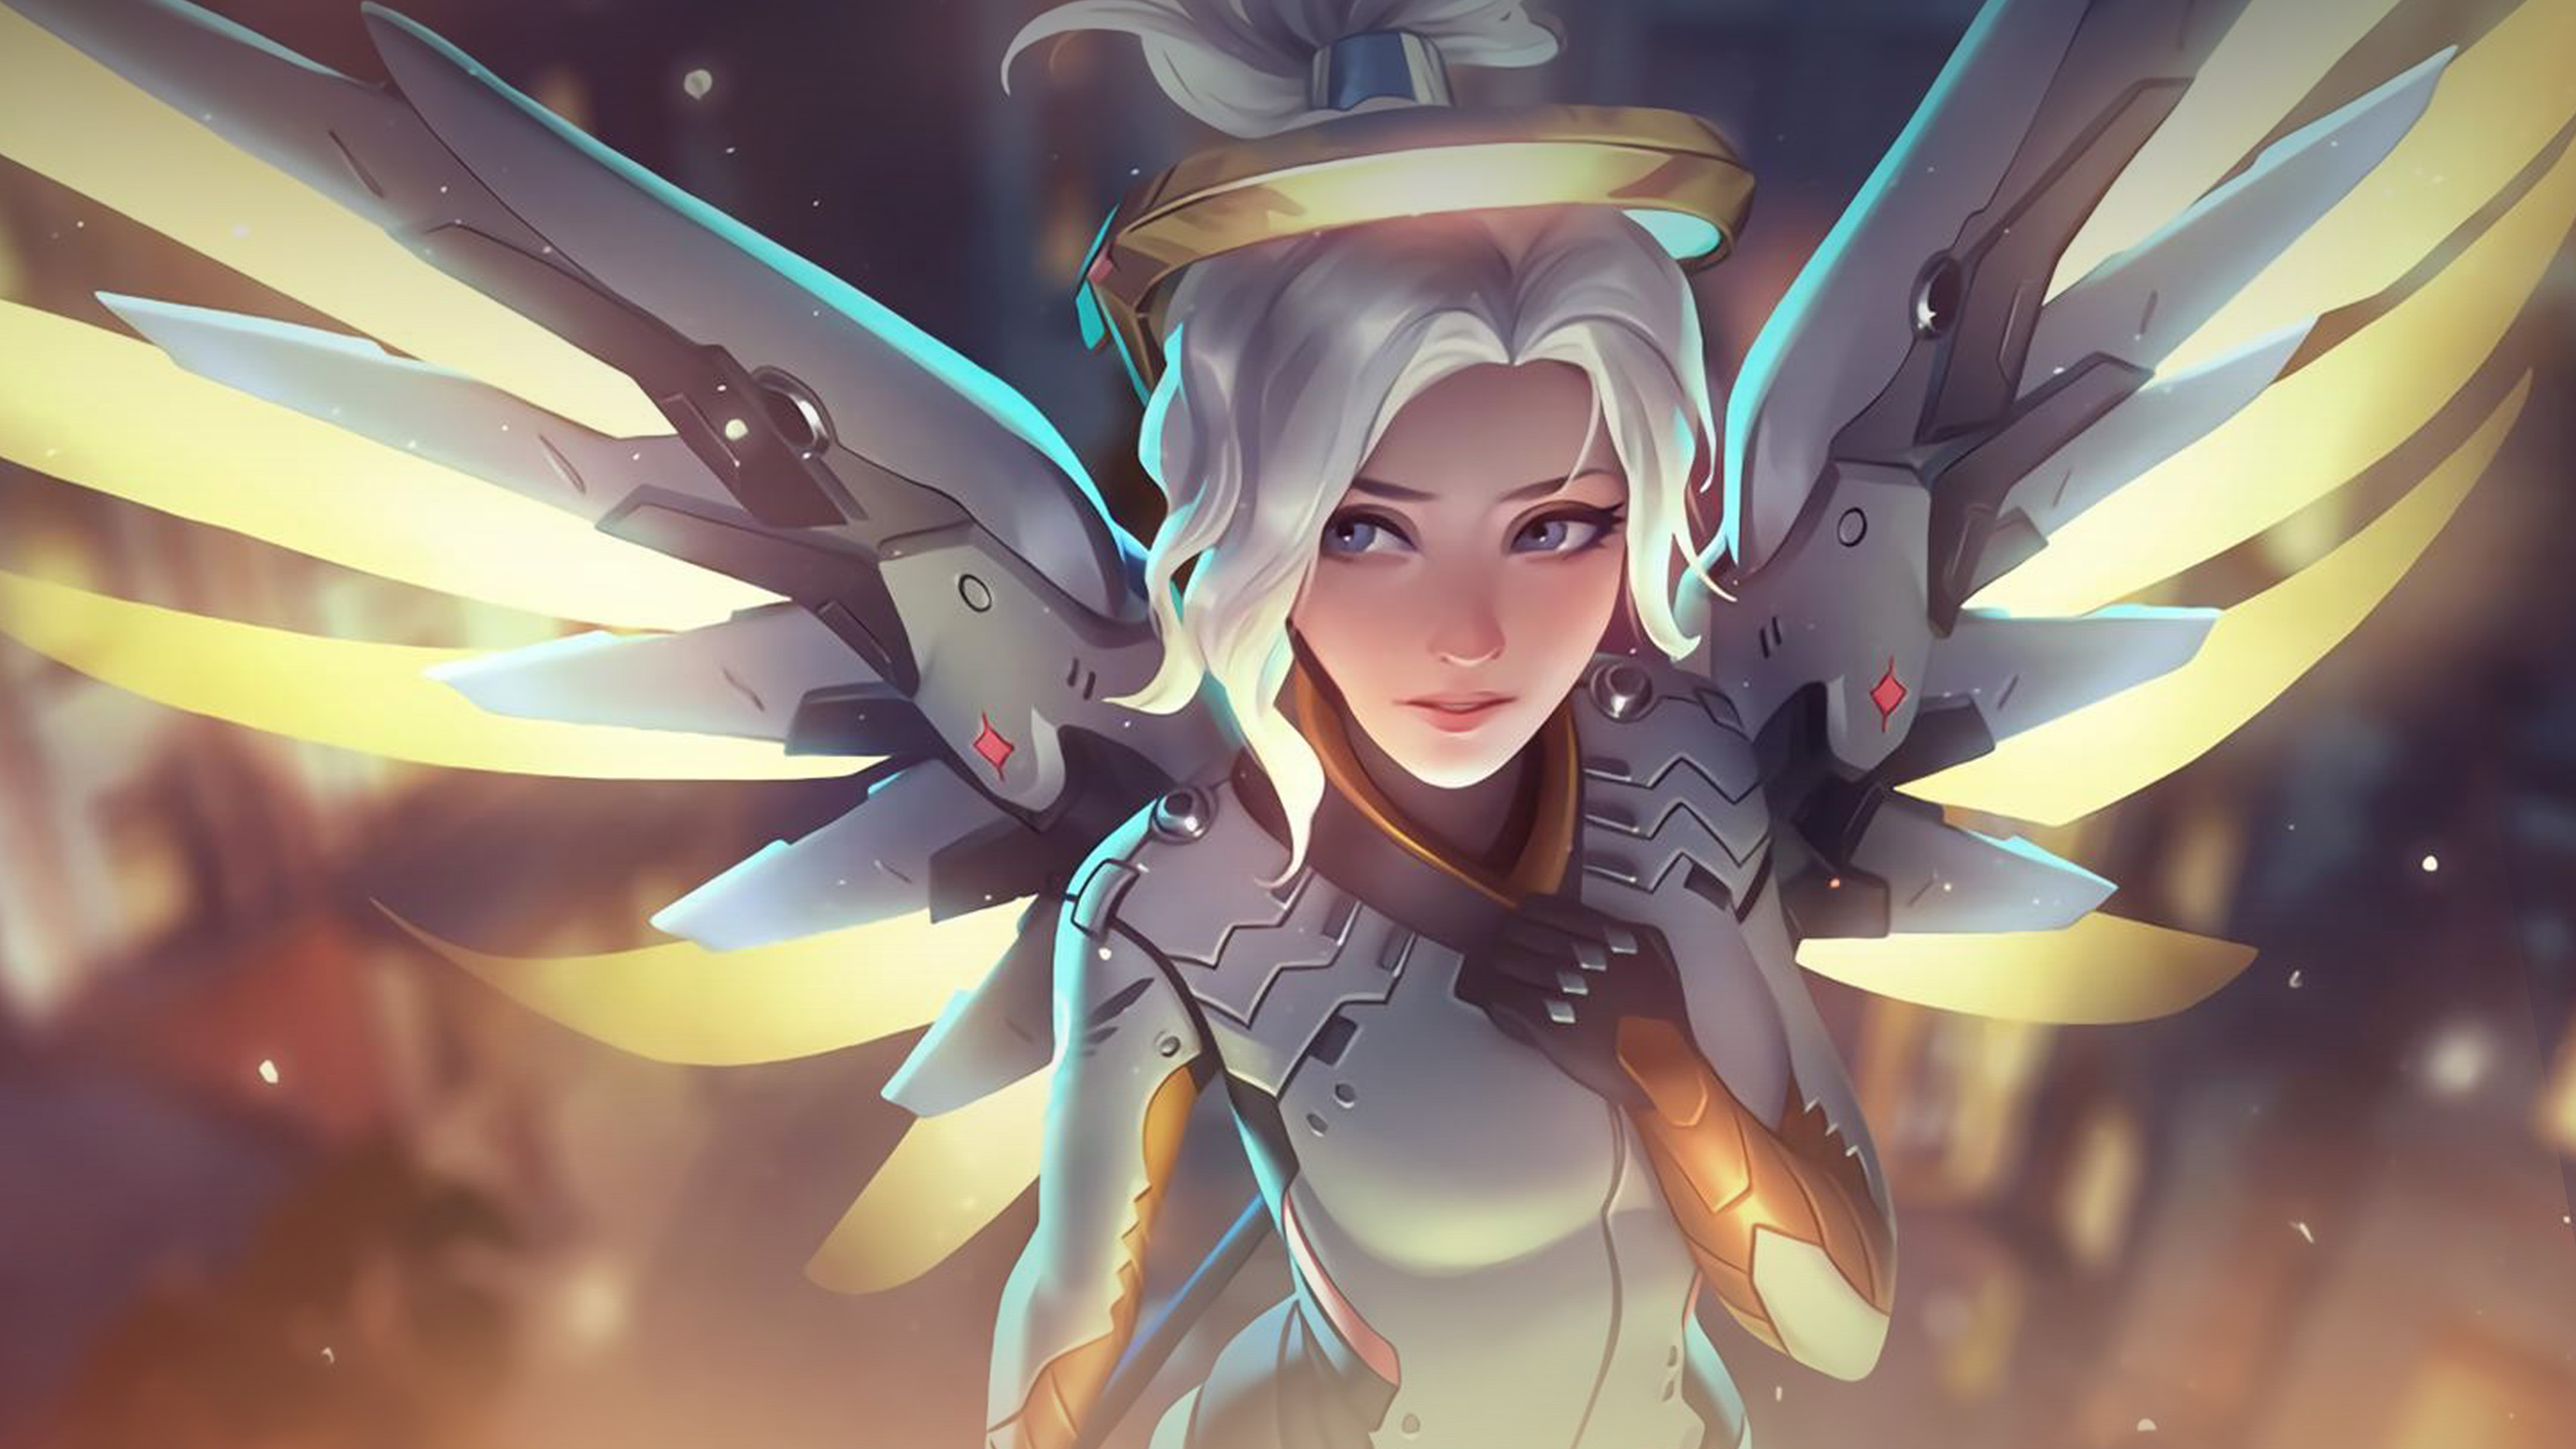 Iphone 7 Plus Anime Girls Wallpapers At82 Mercy Overwatch Angel Healer Game Art Illustration